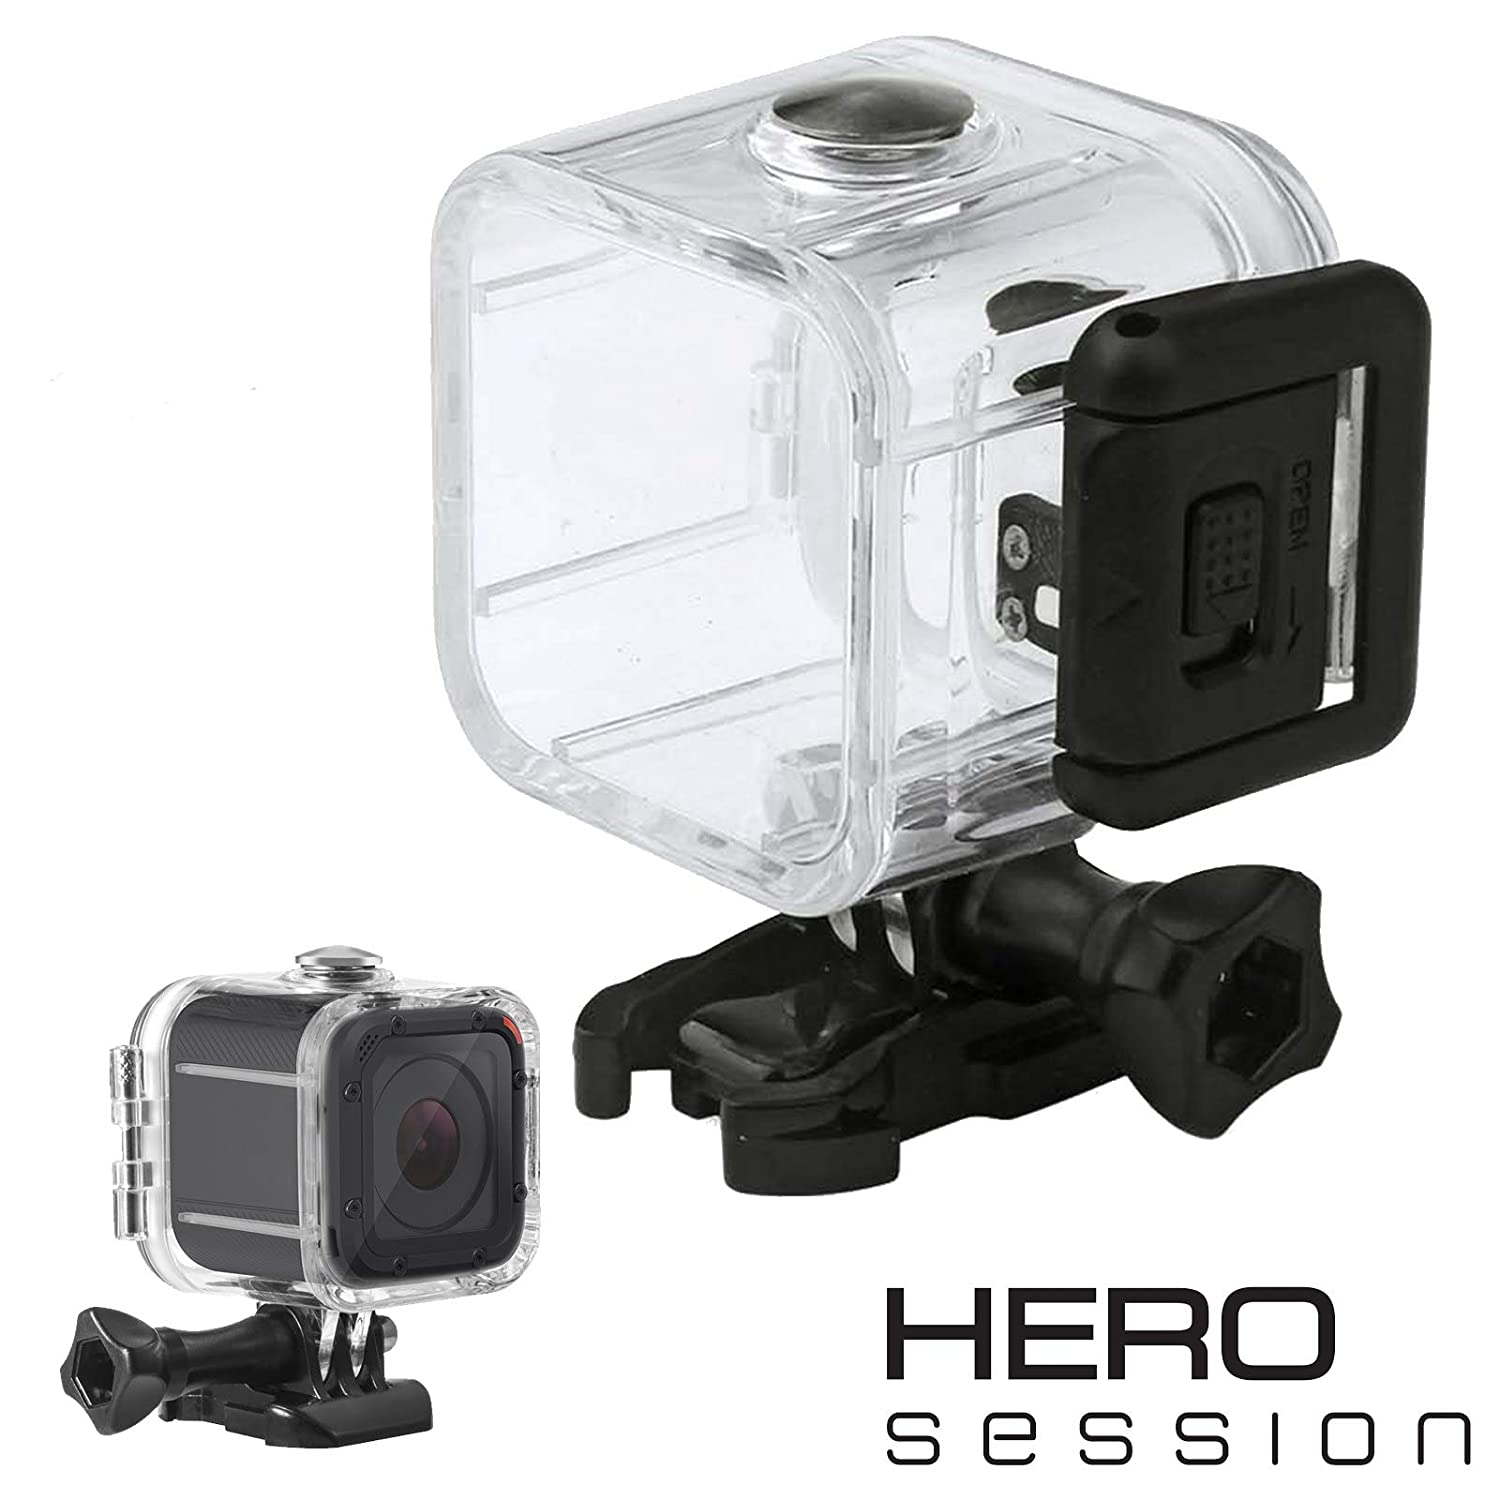 RAXPY - Carcasa Impermeable para GoPro Session (Resistente ...